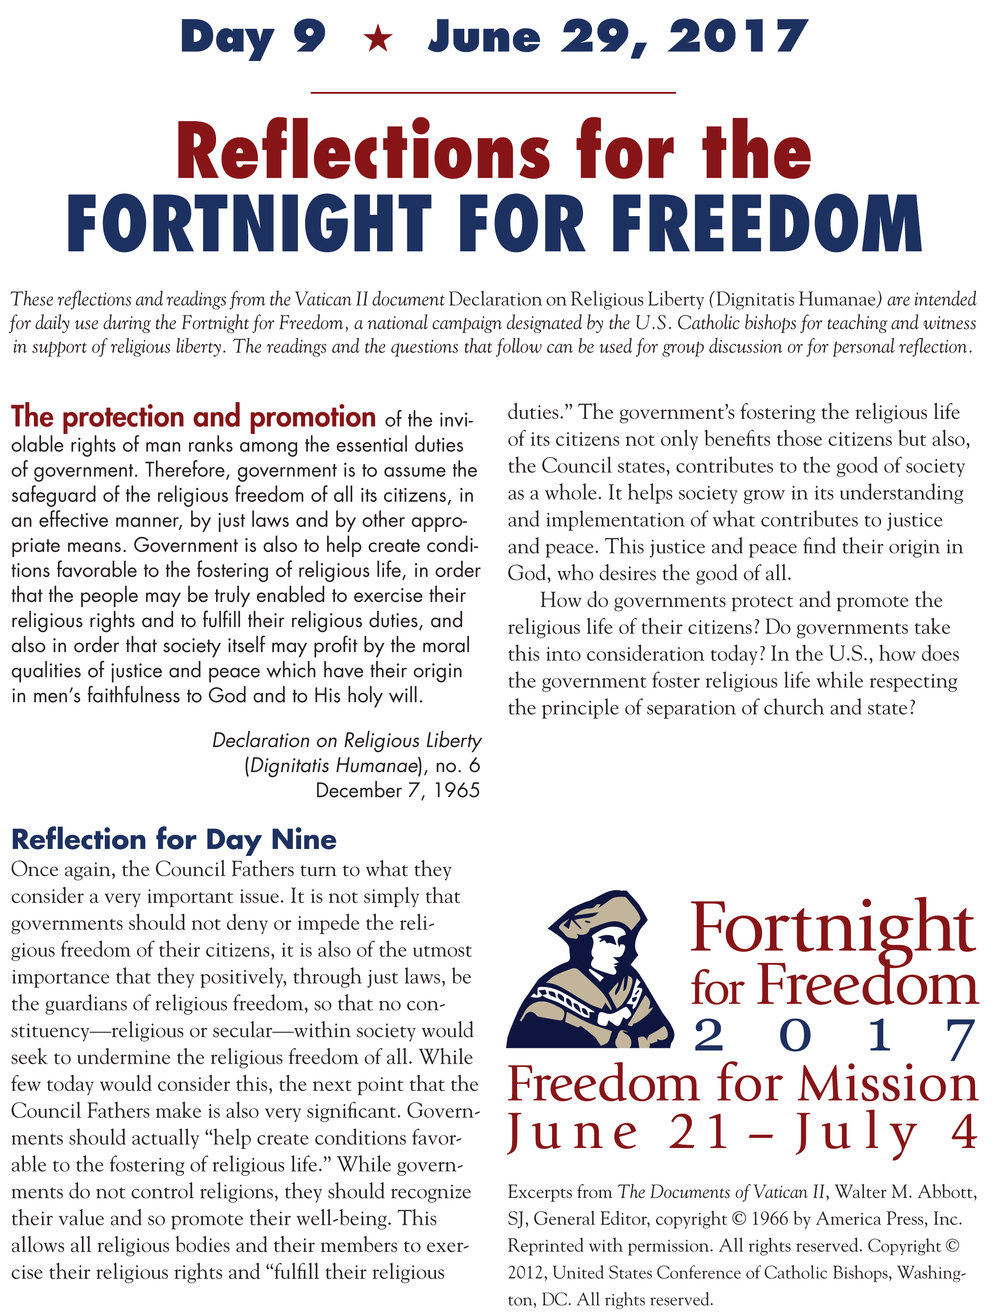 fortnight-for-freedom-english-reflections-2017-10.jpg